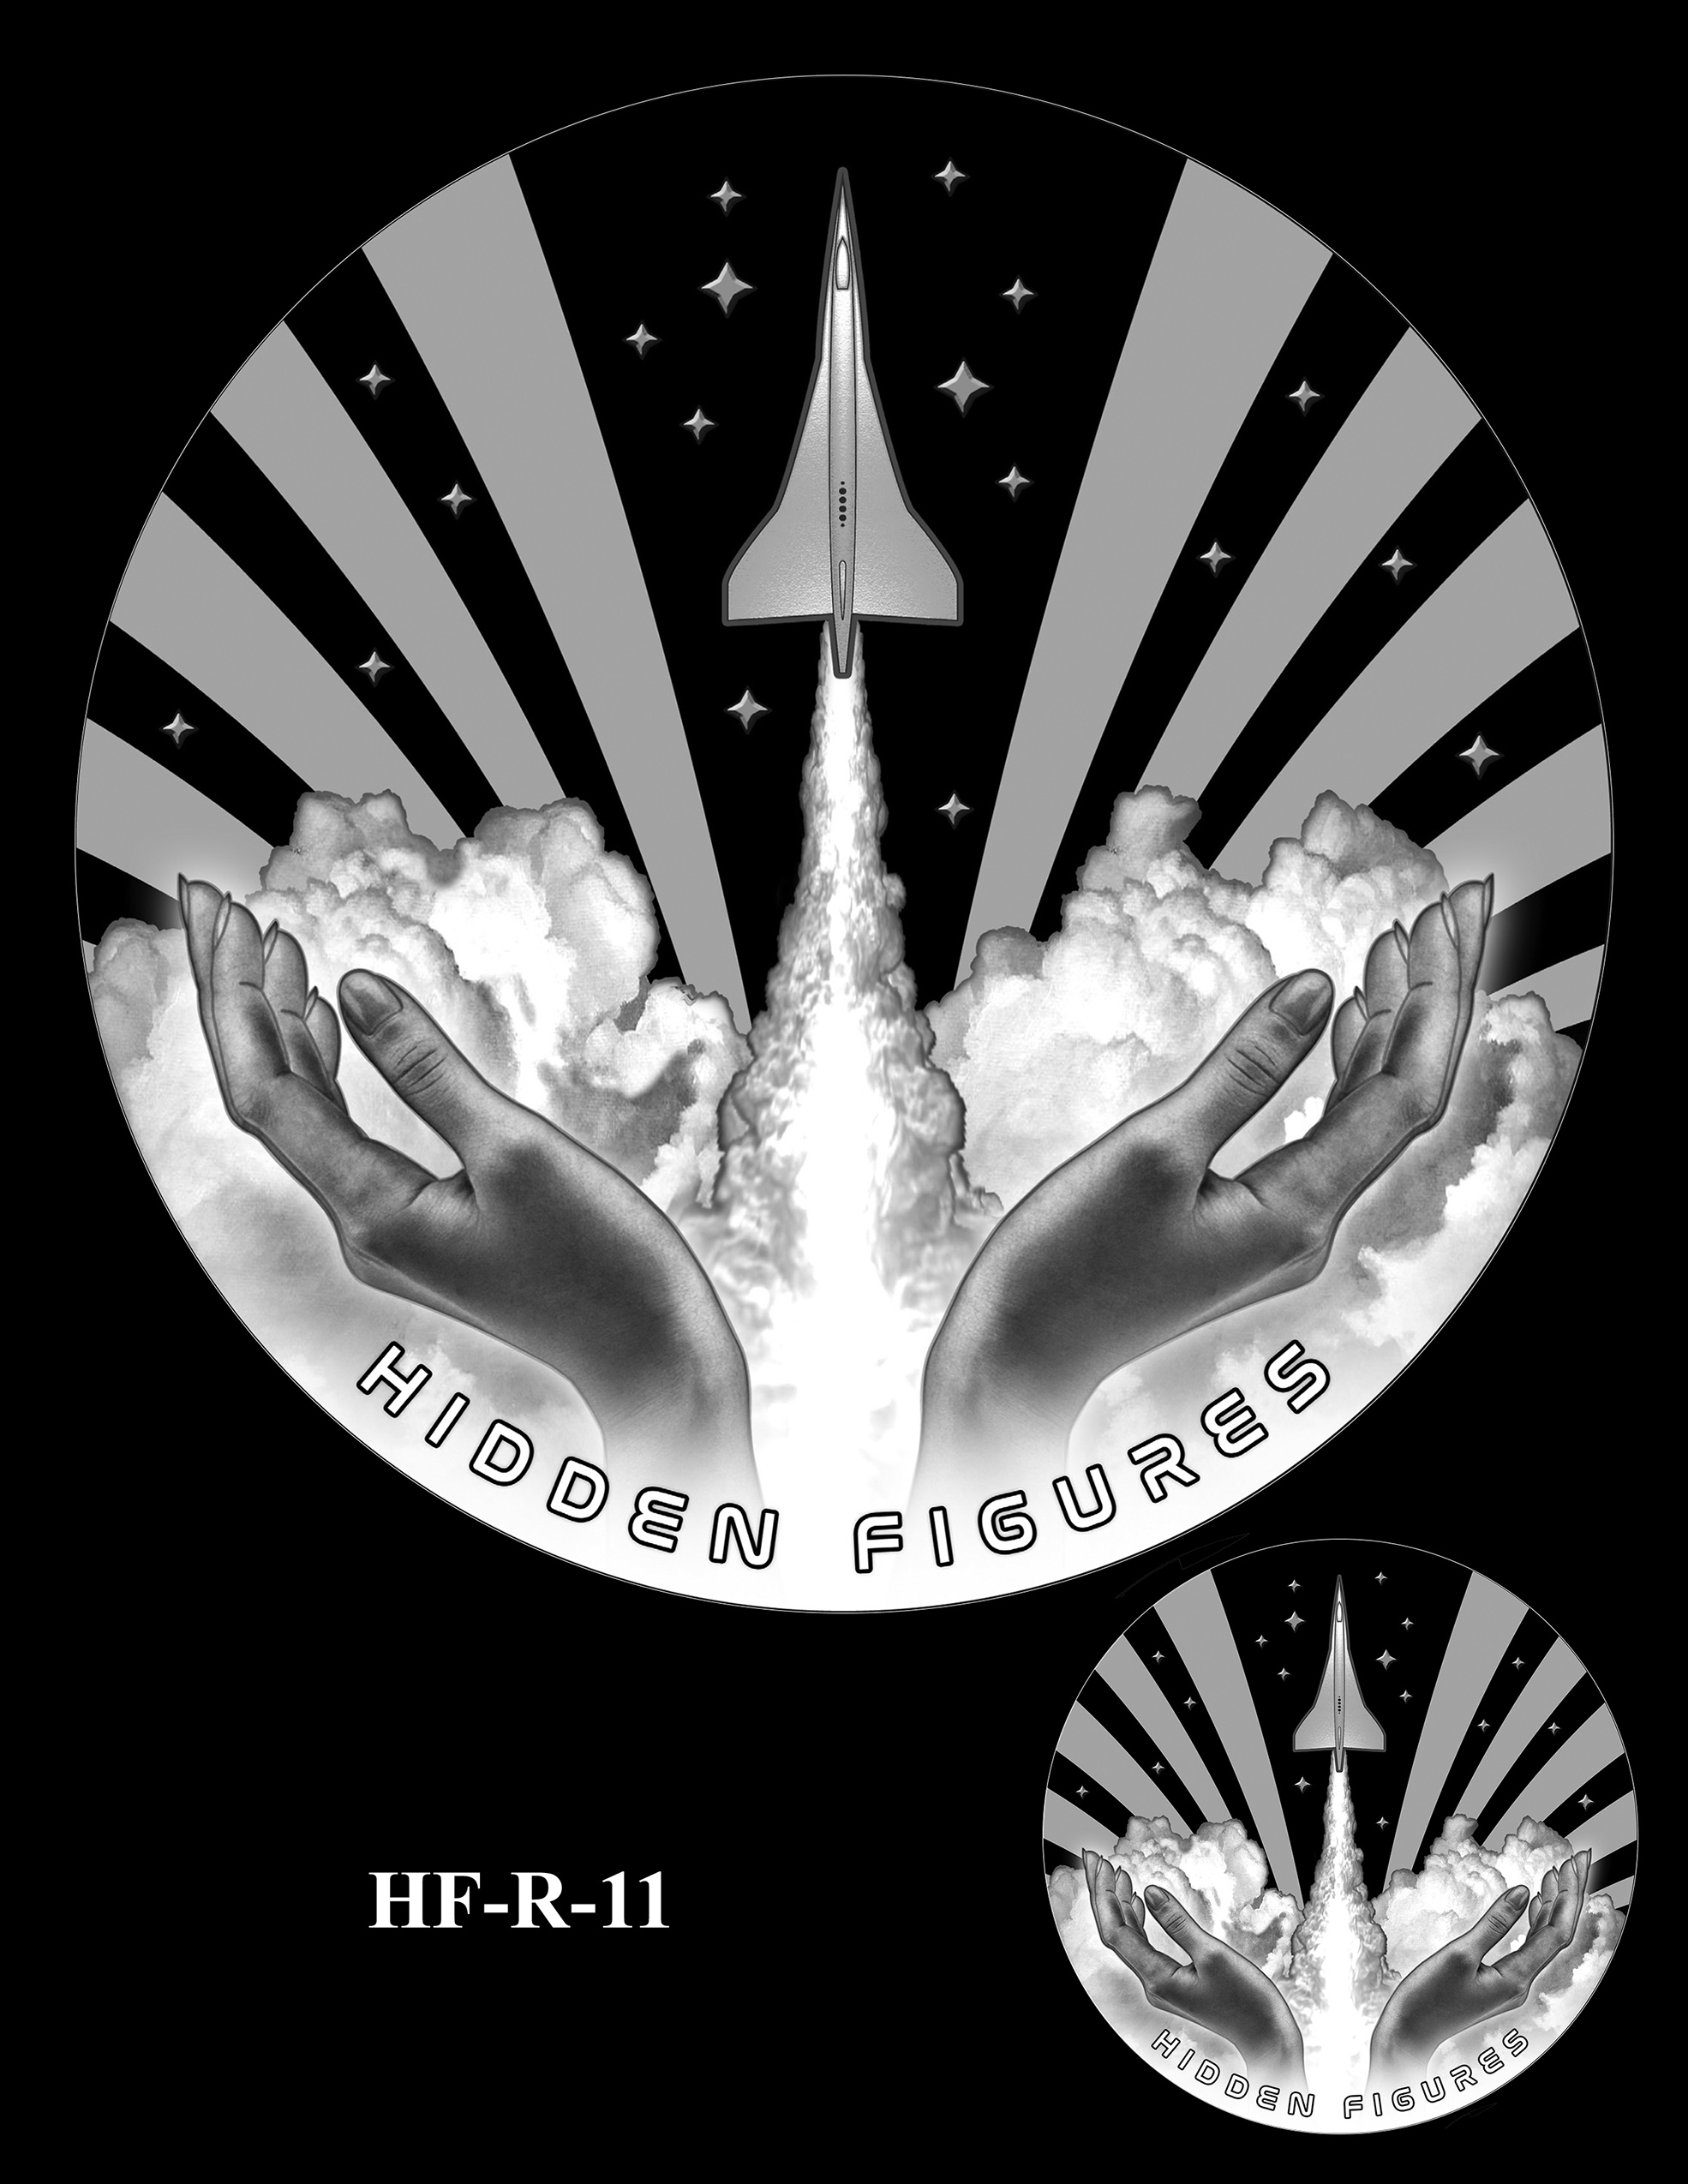 HF-R-11 -- Hidden Figures Group Congressional Gold Medal